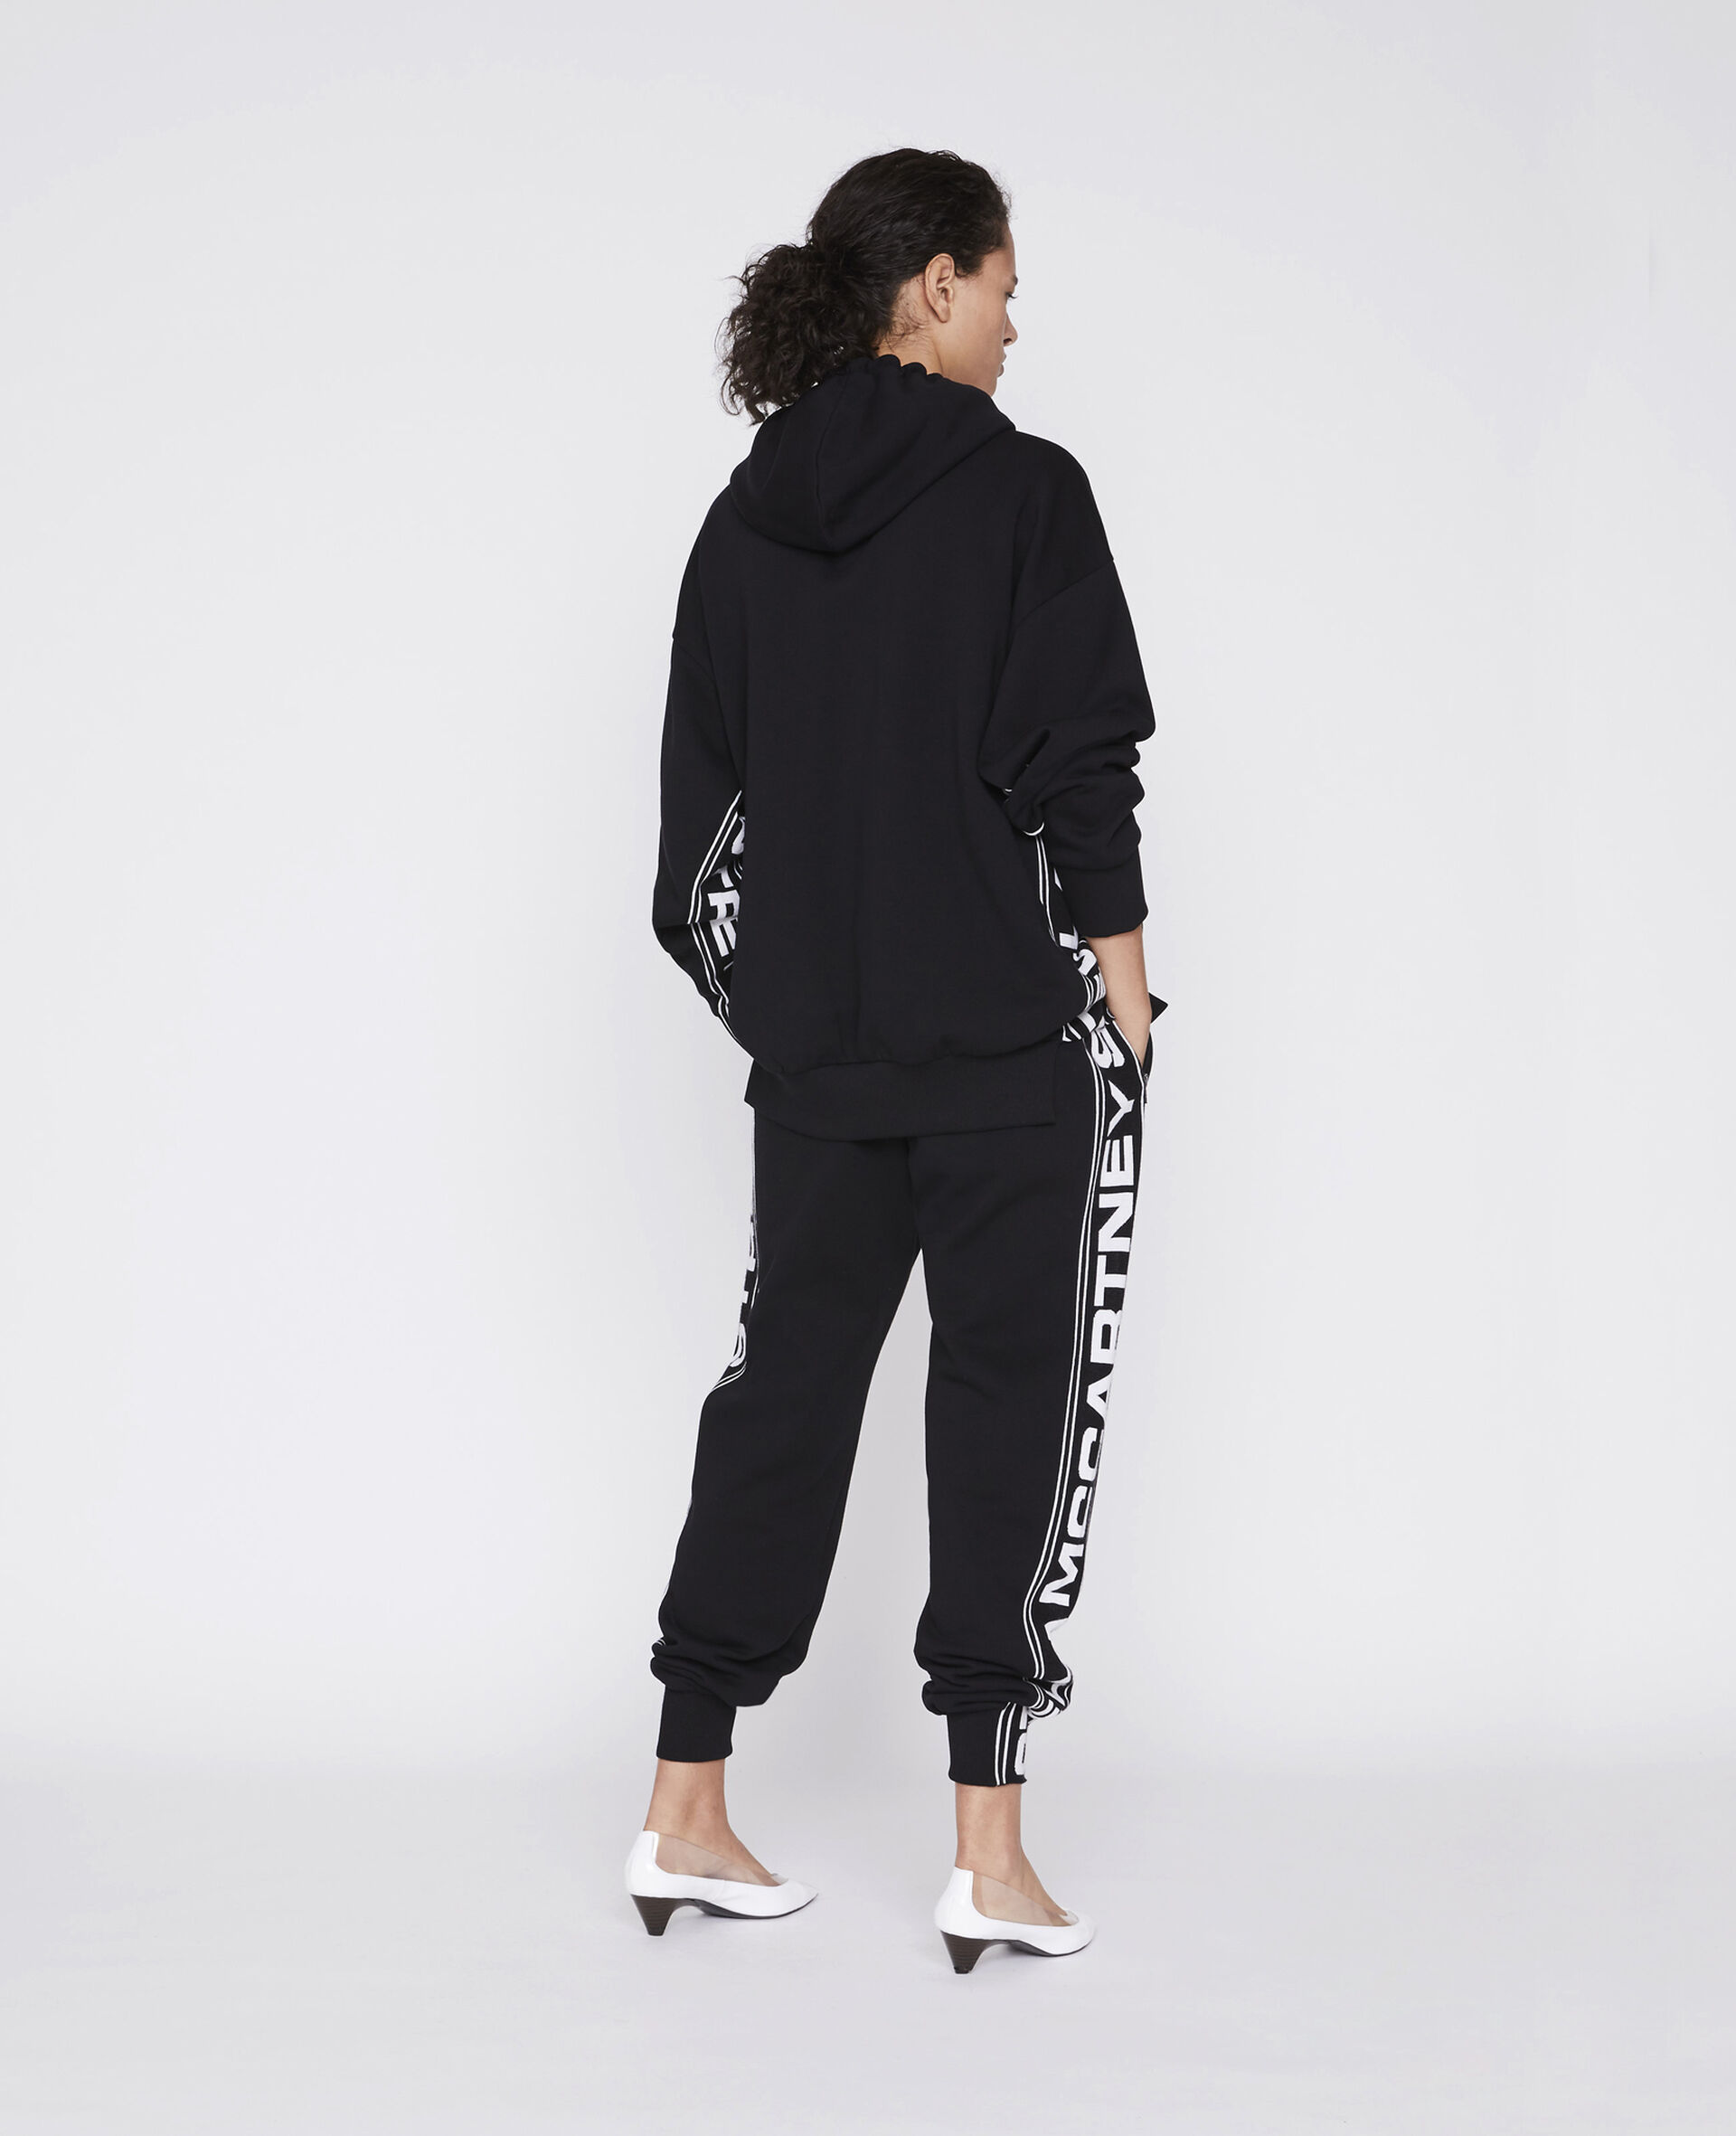 23 OBS Knitted Hoodie-Black-large image number 2